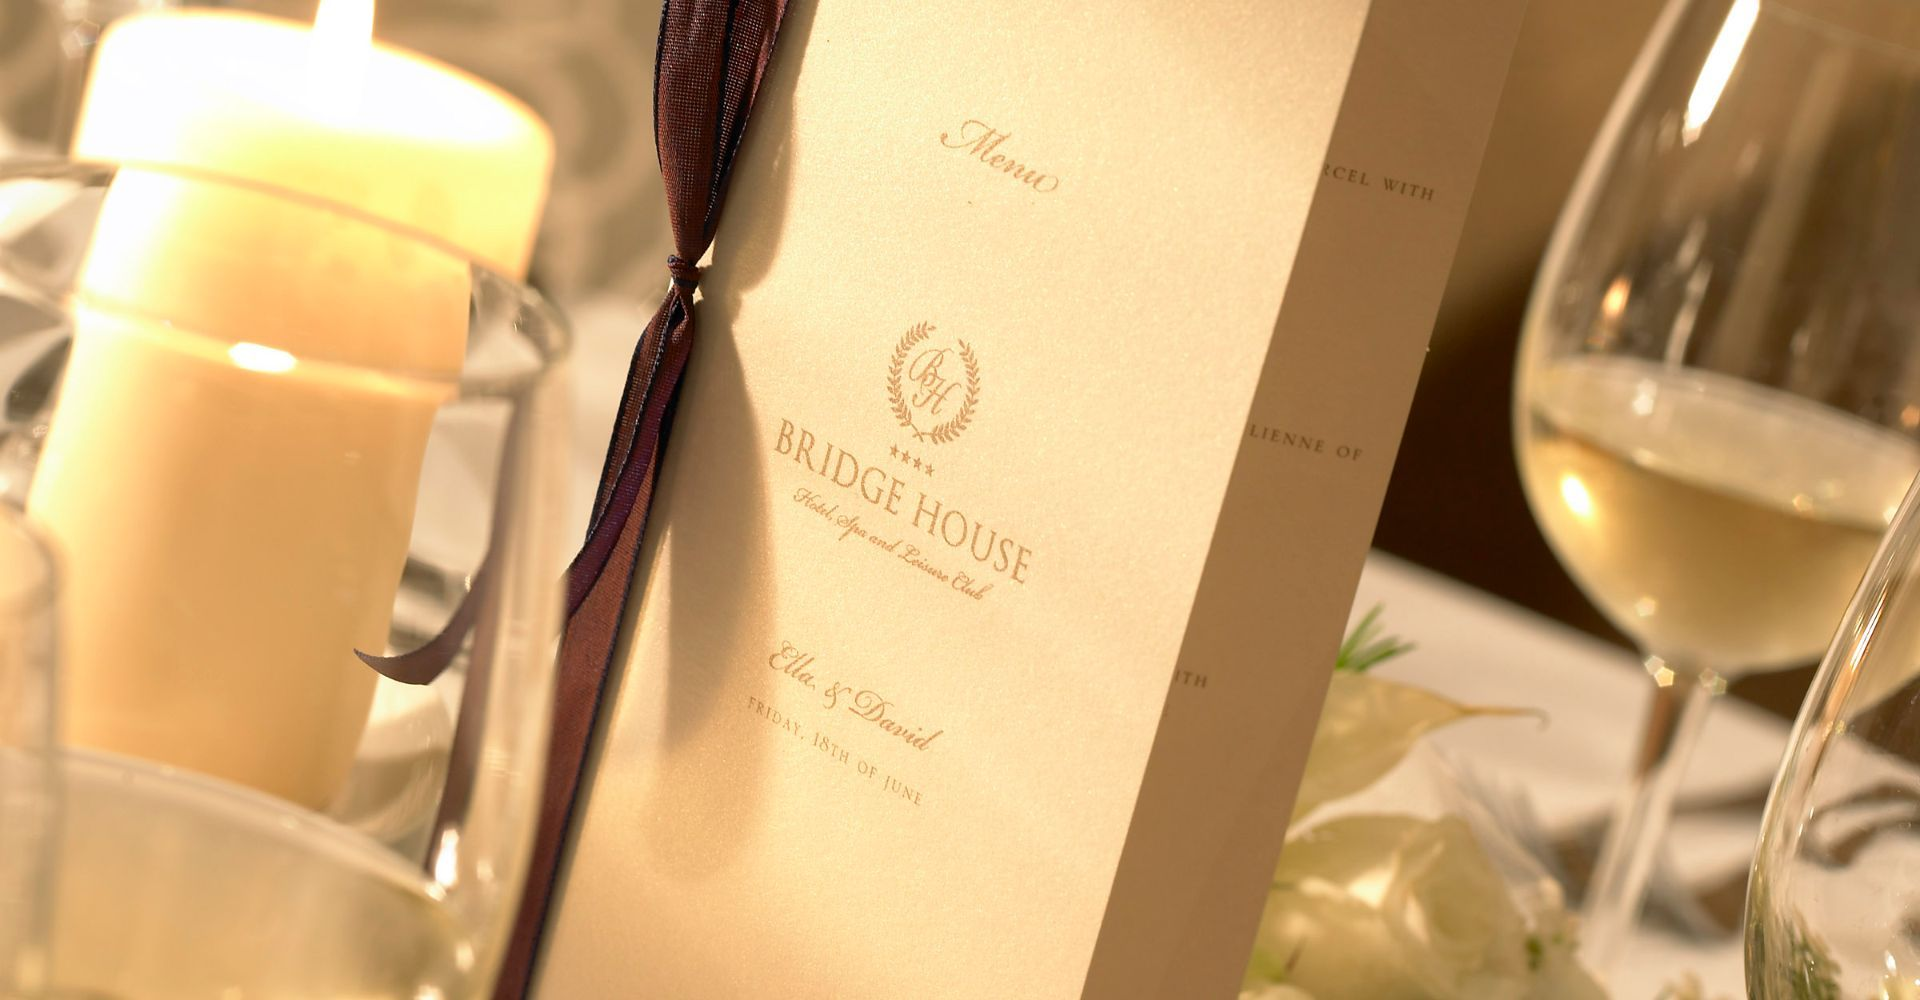 bridge_house_hotel_offaly_wedding_detail